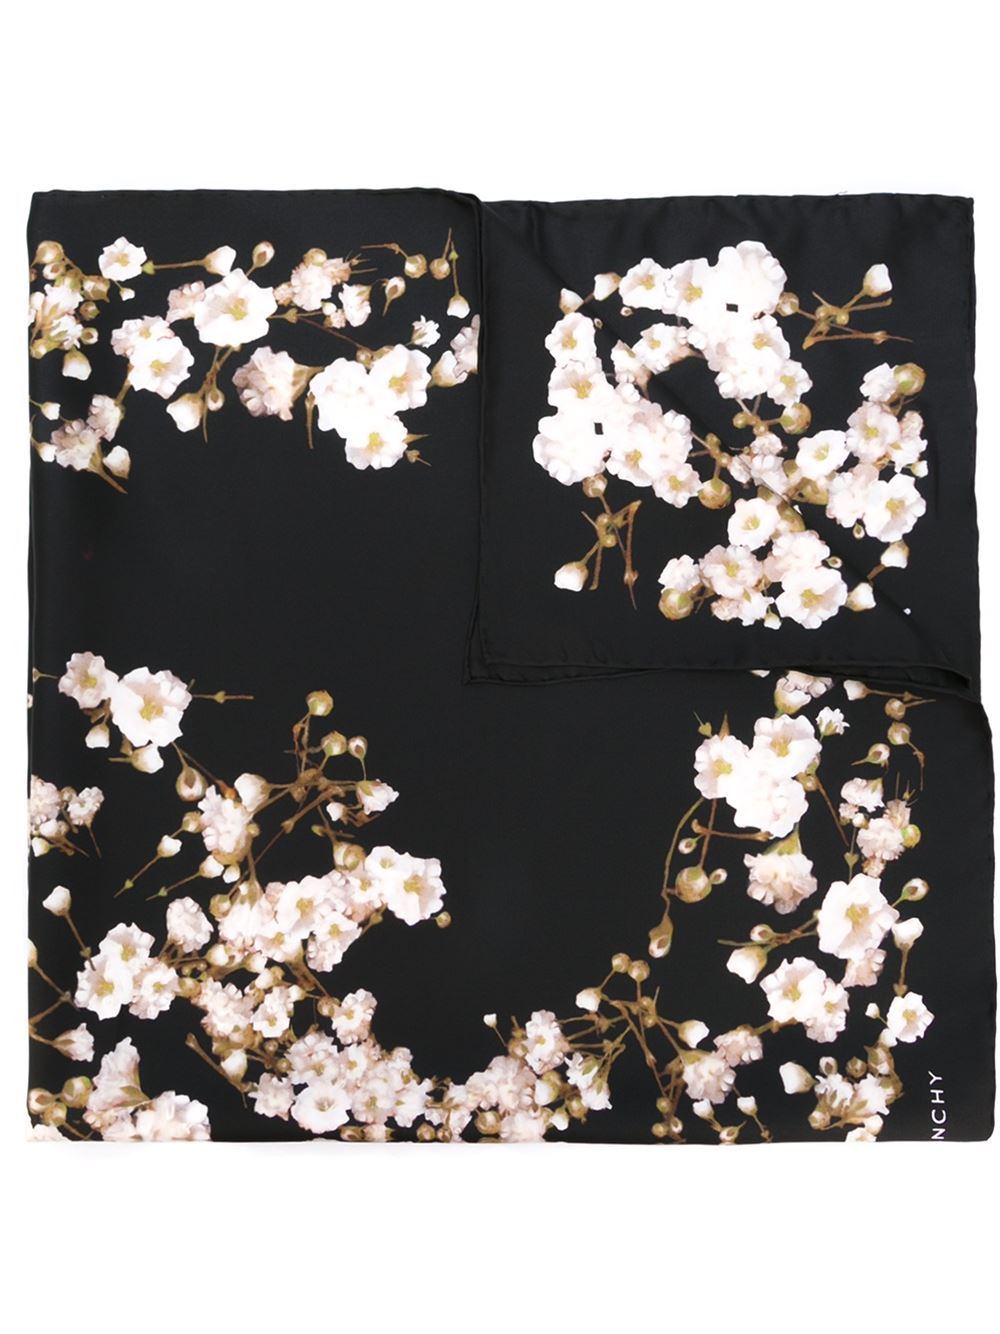 Givenchy Floral Print Scarf in Natural | Lyst